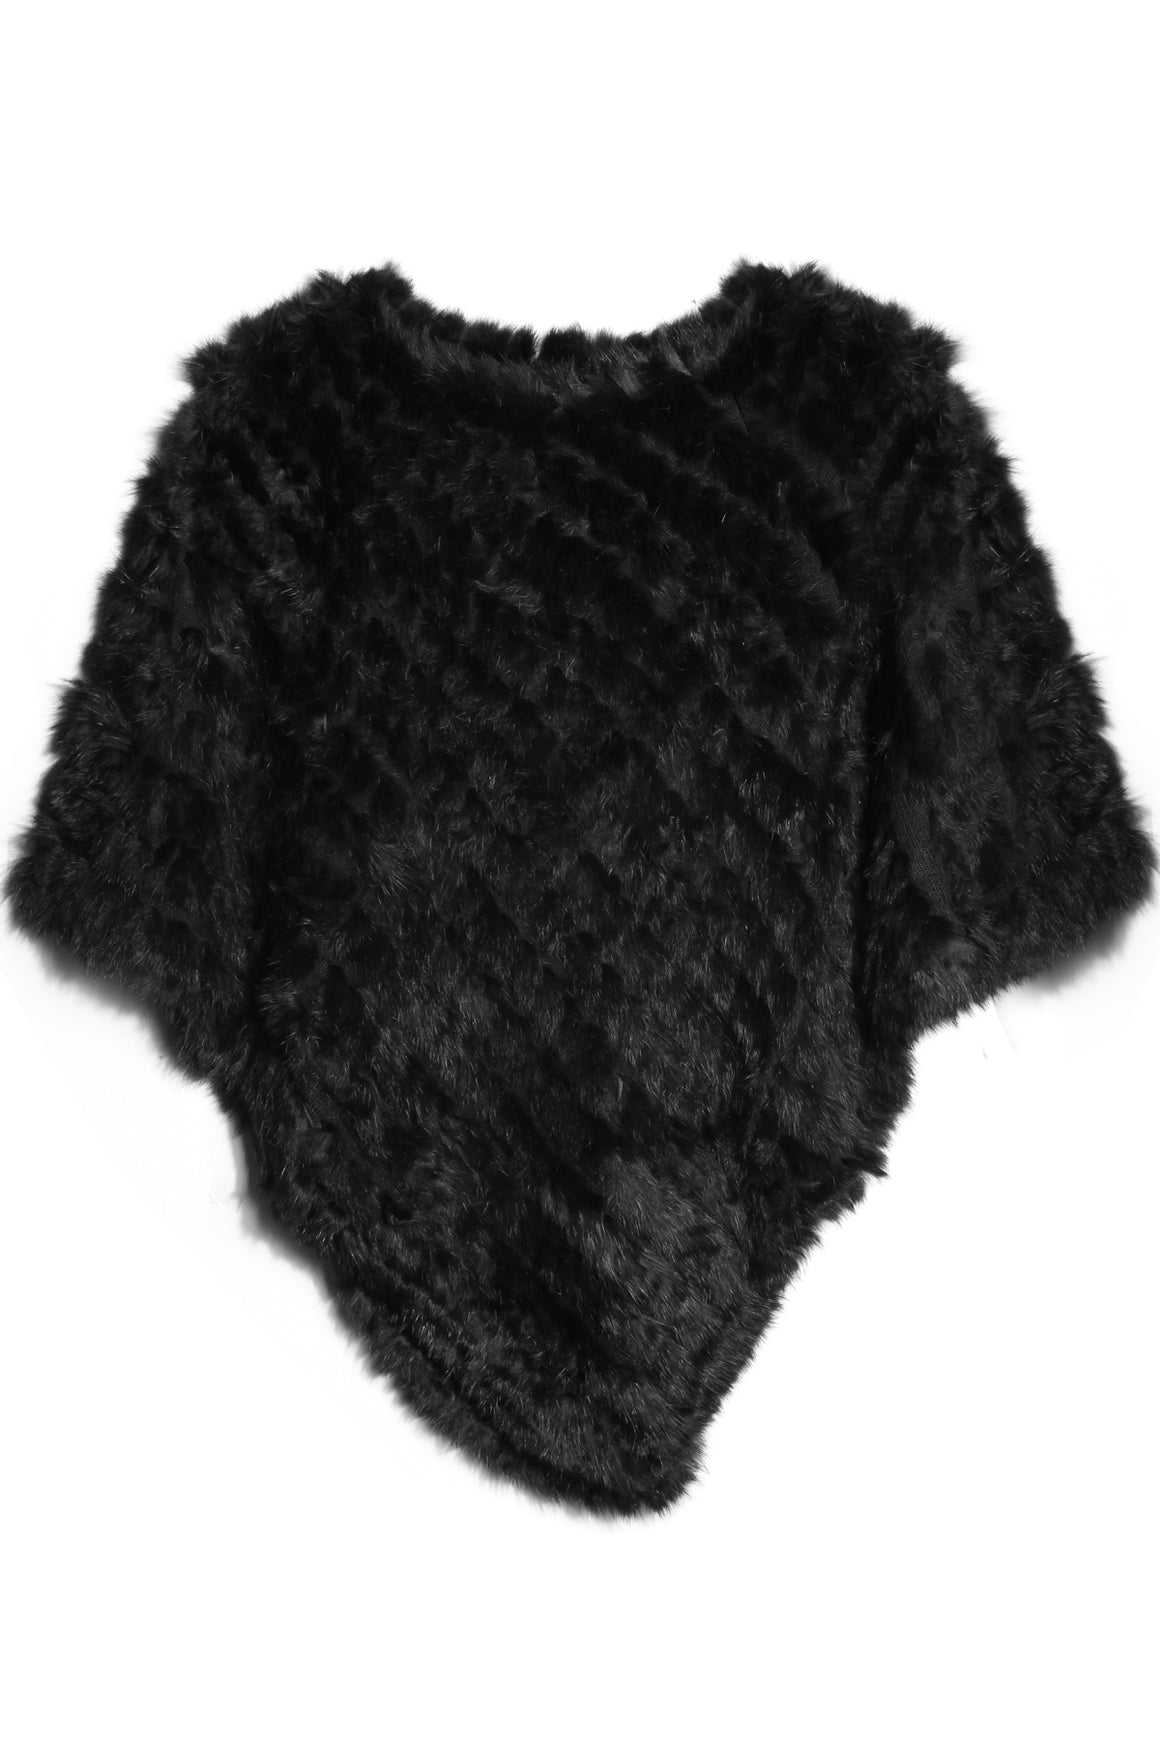 Rabbit Fur Poncho - Black | Shop Alice & Lily at Wallace and Gibbs NZ